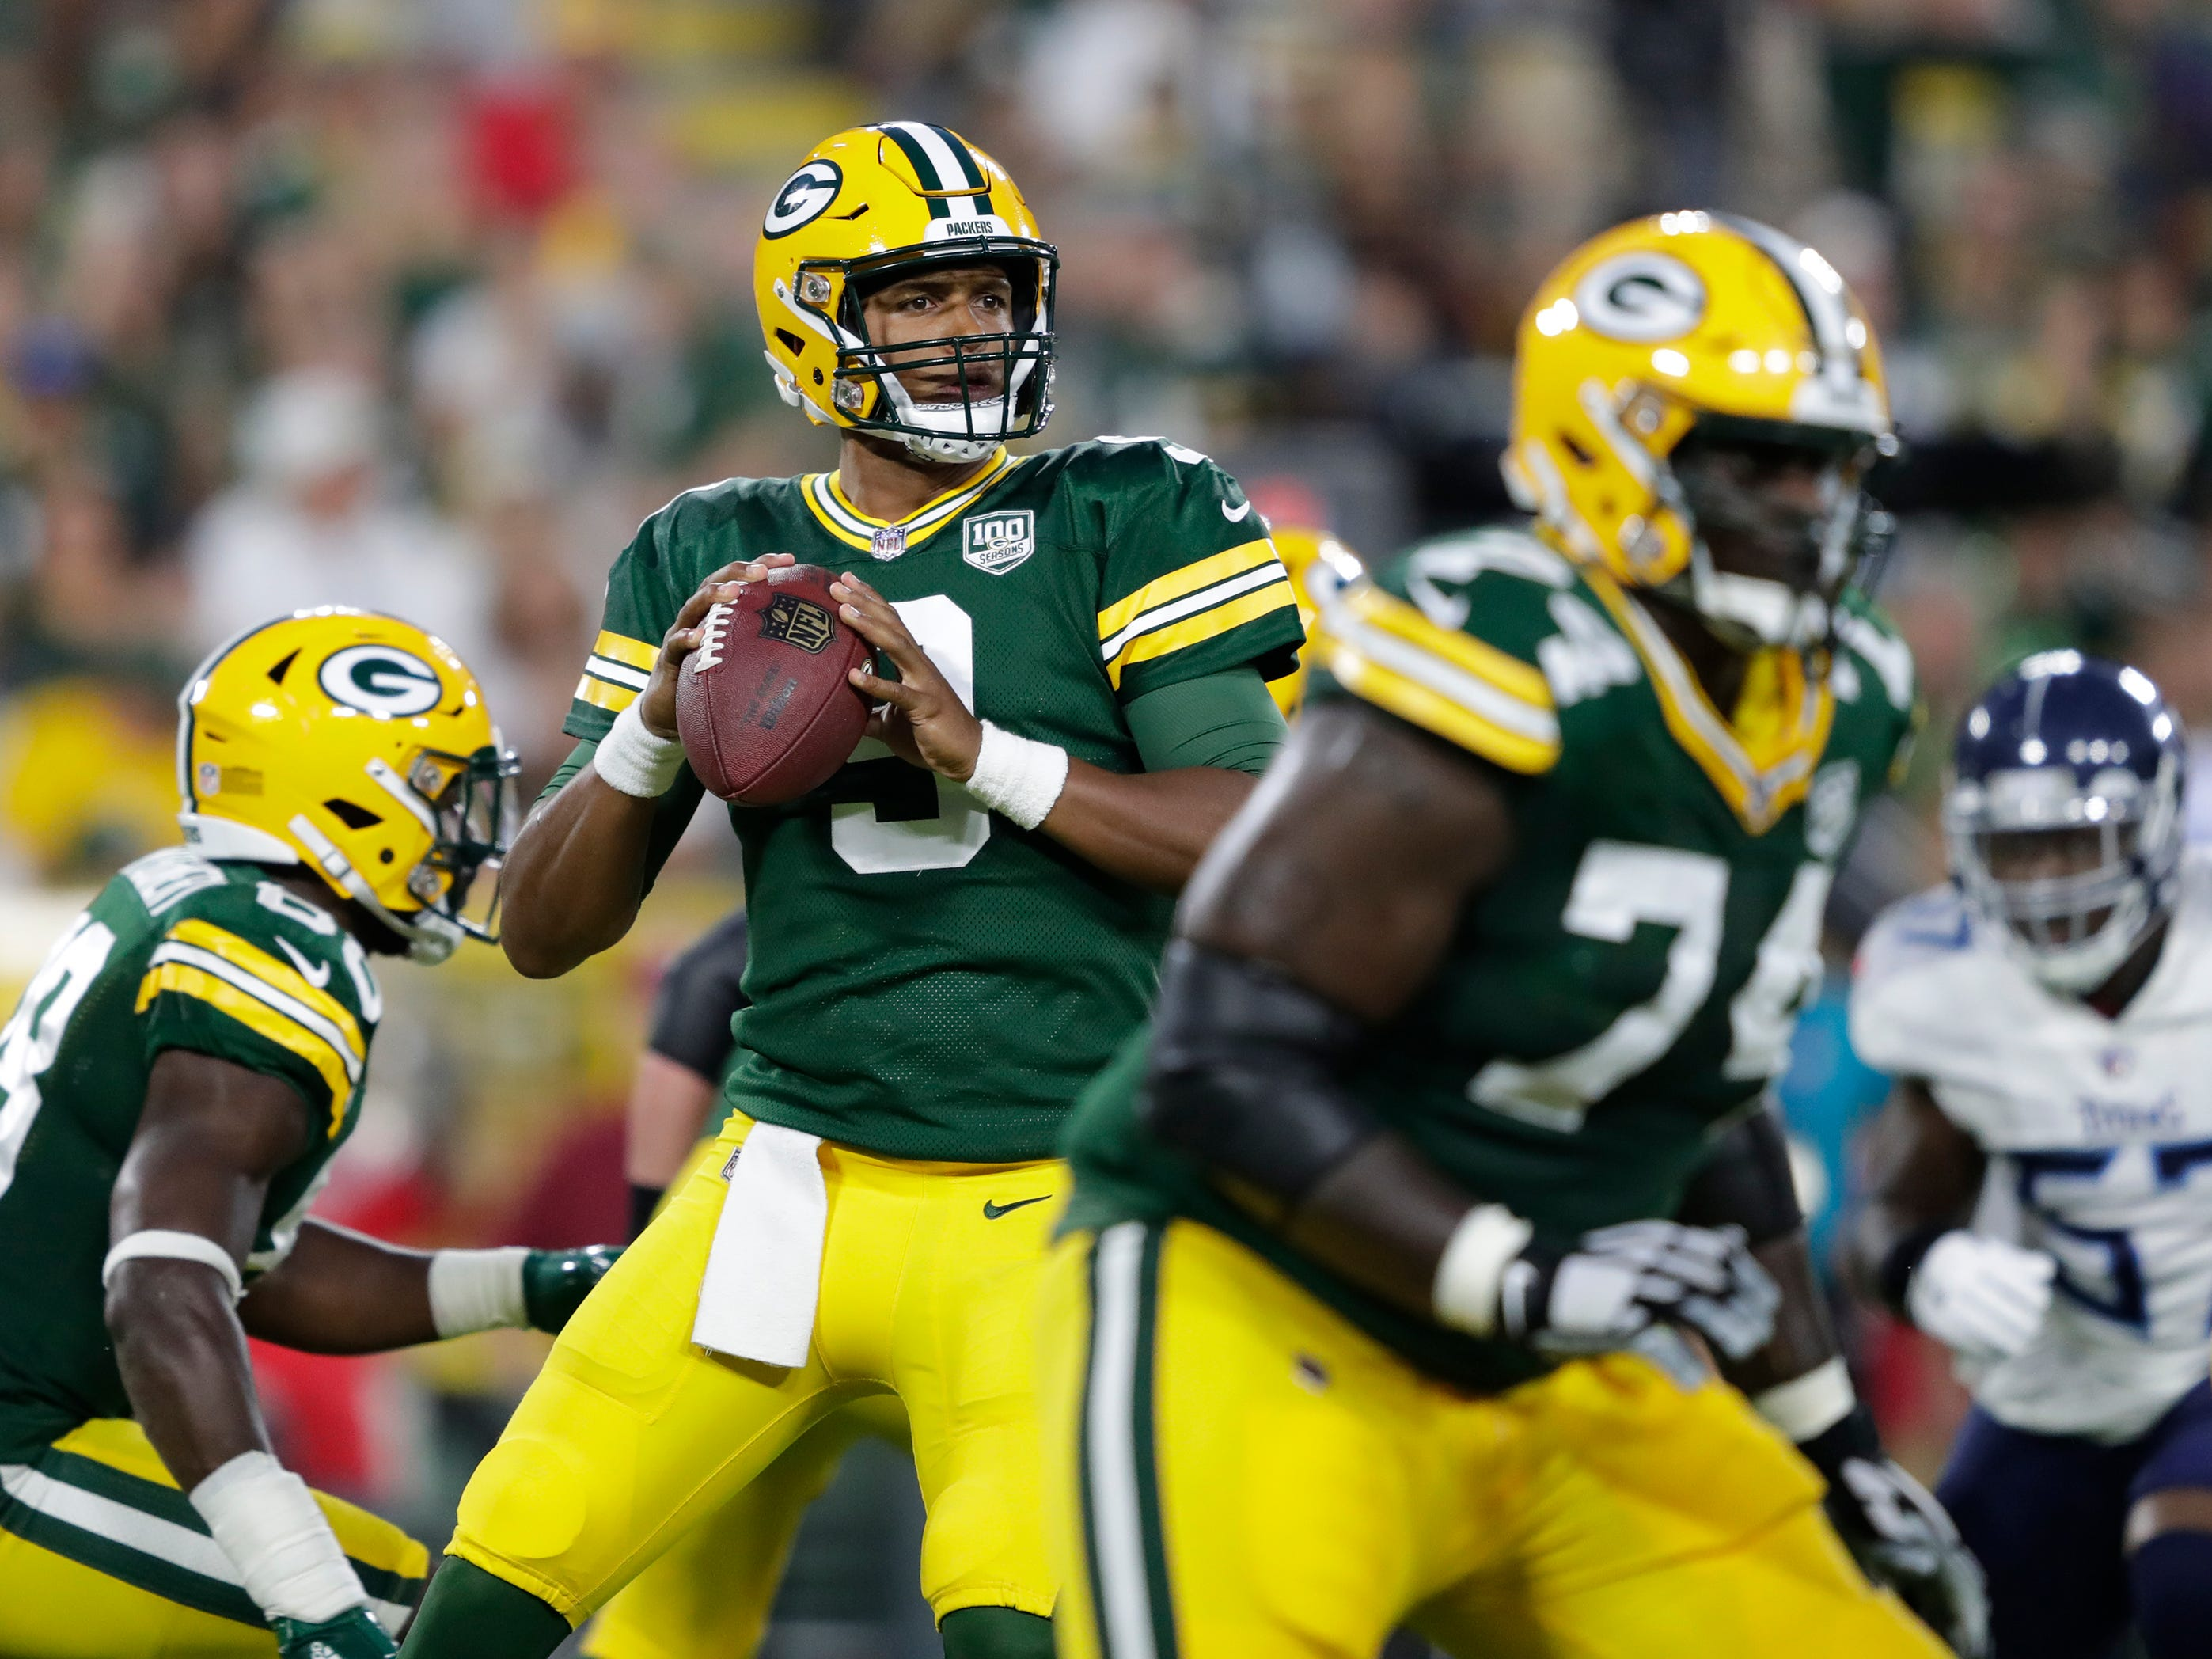 Green Bay Packers quarterback DeShone Kizer (9) looks to pass against the Tennessee Titans during their football game Thursday, August 9, 2018, at Lambeau Field in Green Bay, Wis.